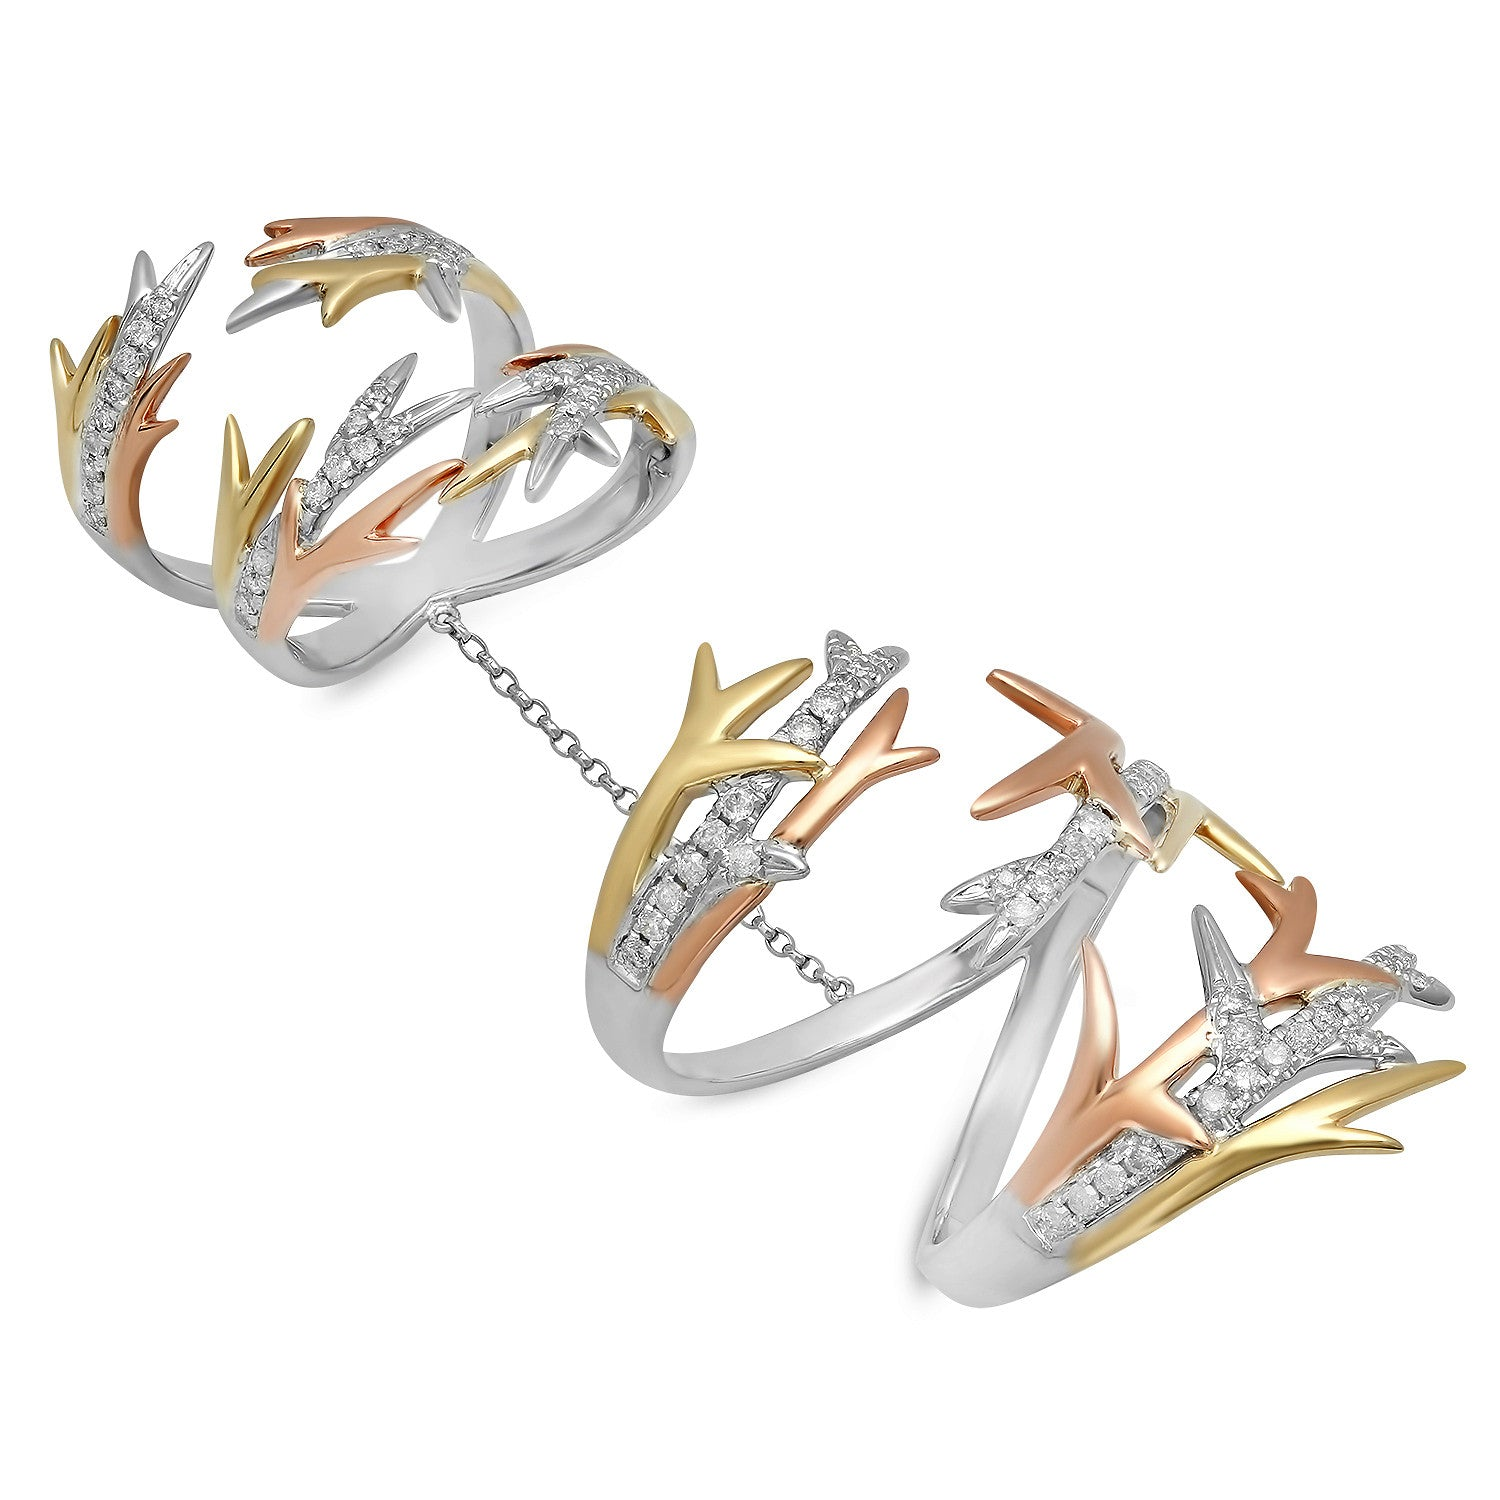 Elodie K 3 Gold Thorn Double Ring